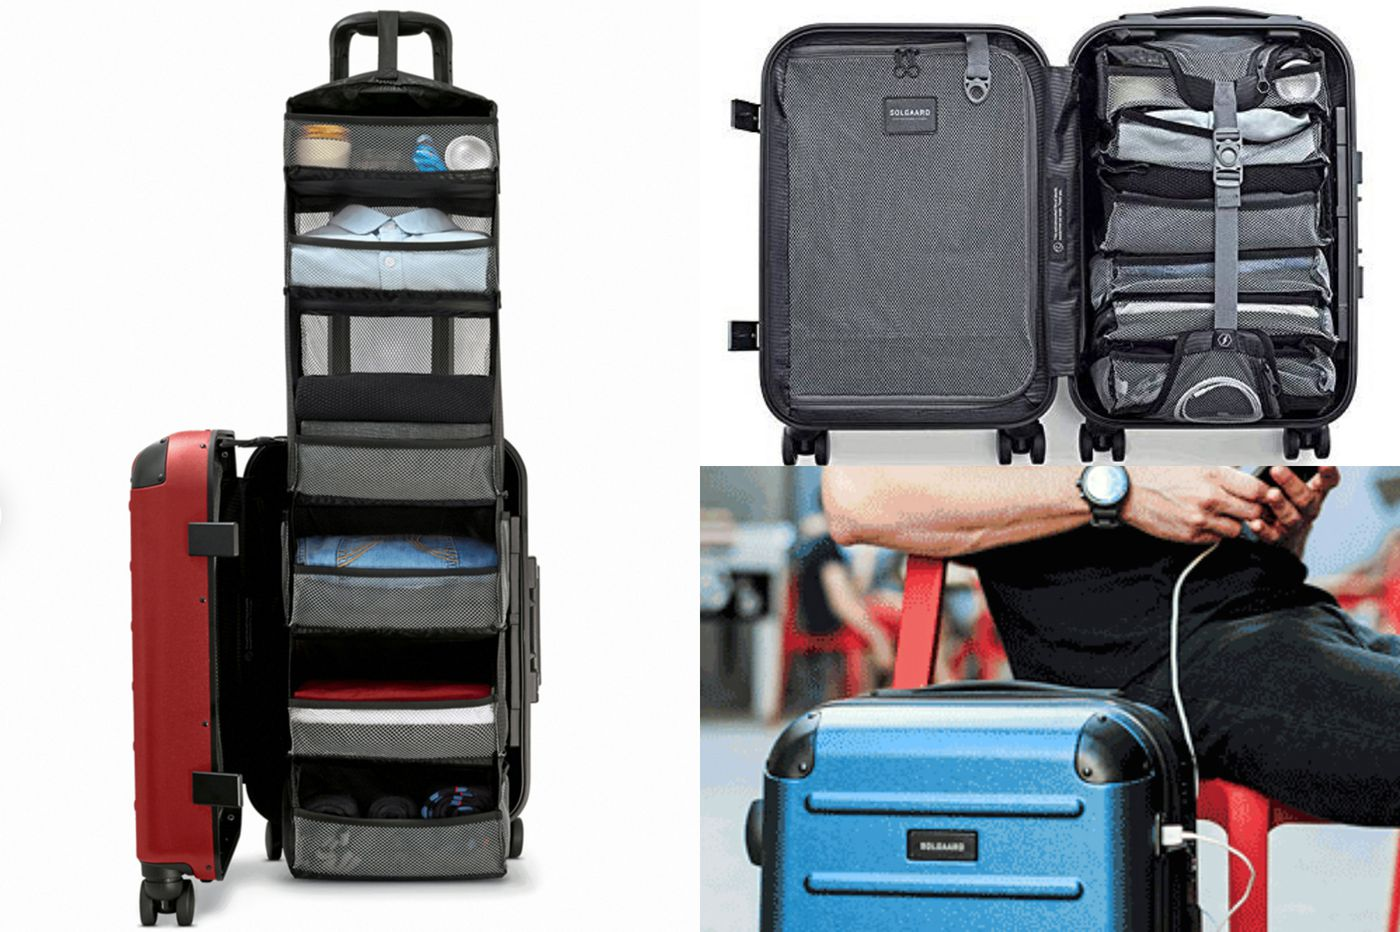 Travel Gear: Solgaard Carry-On Closet 2.0